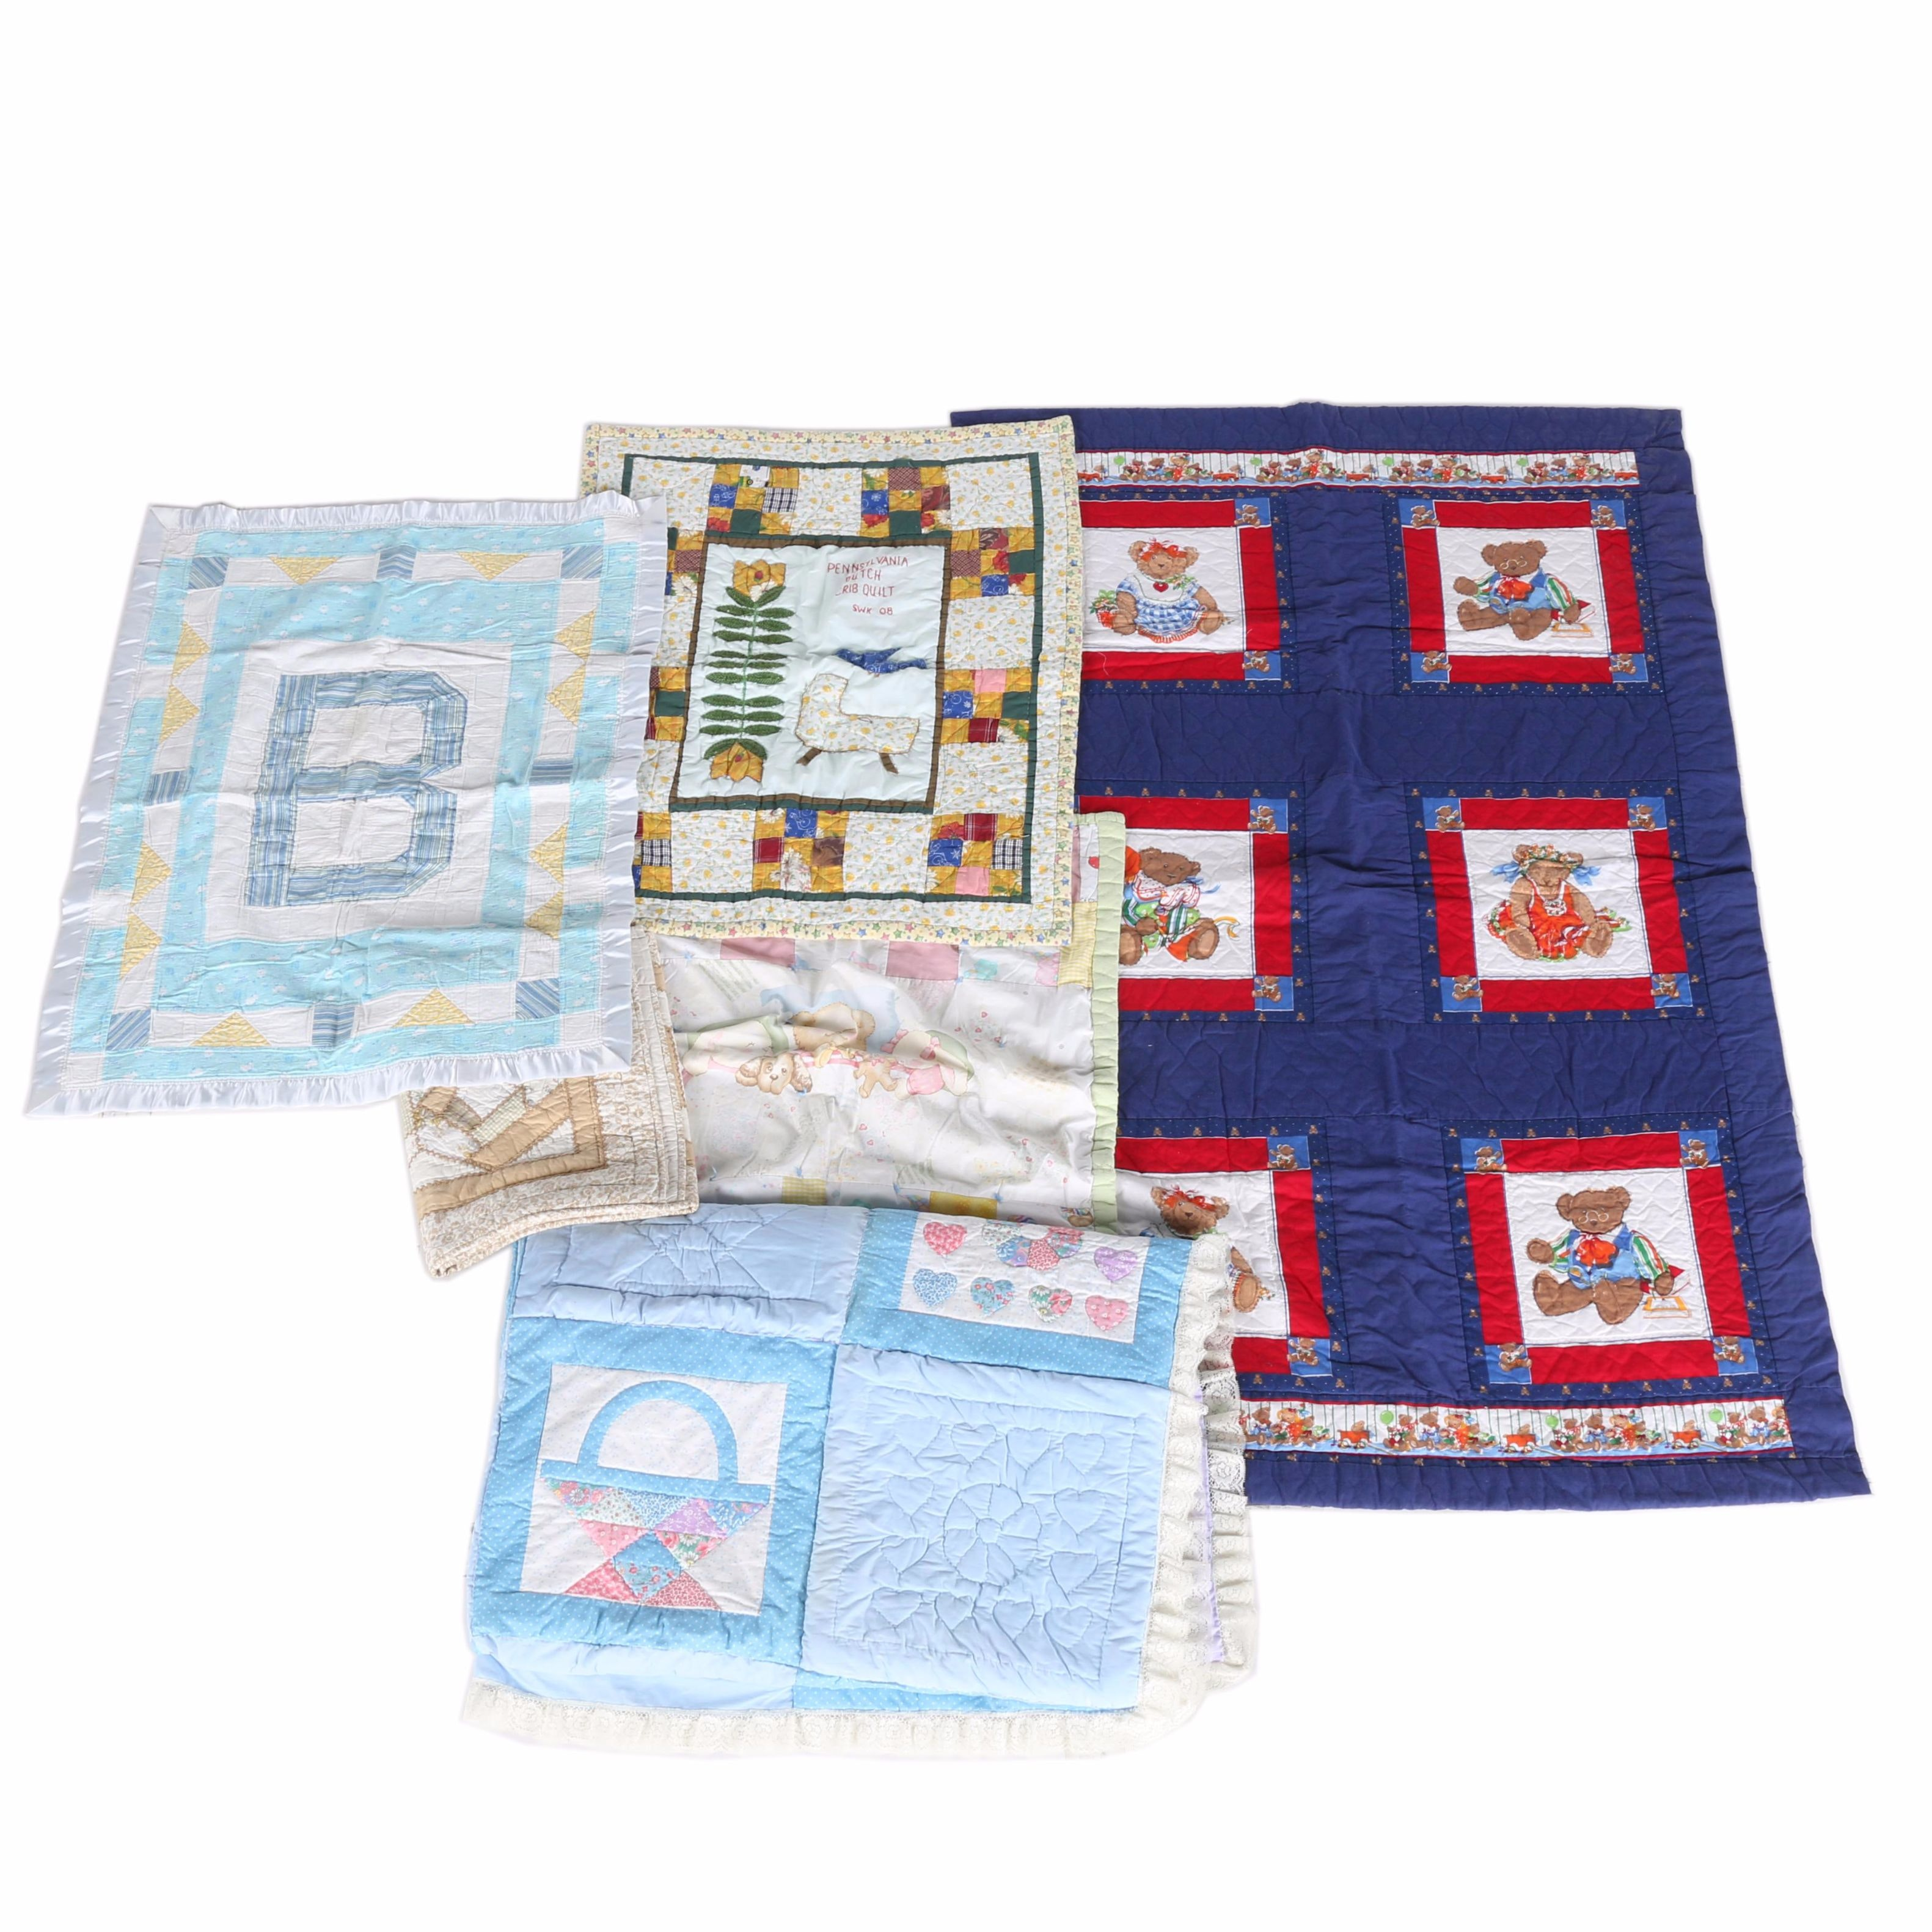 Collection of Baby Blankets and Quilts